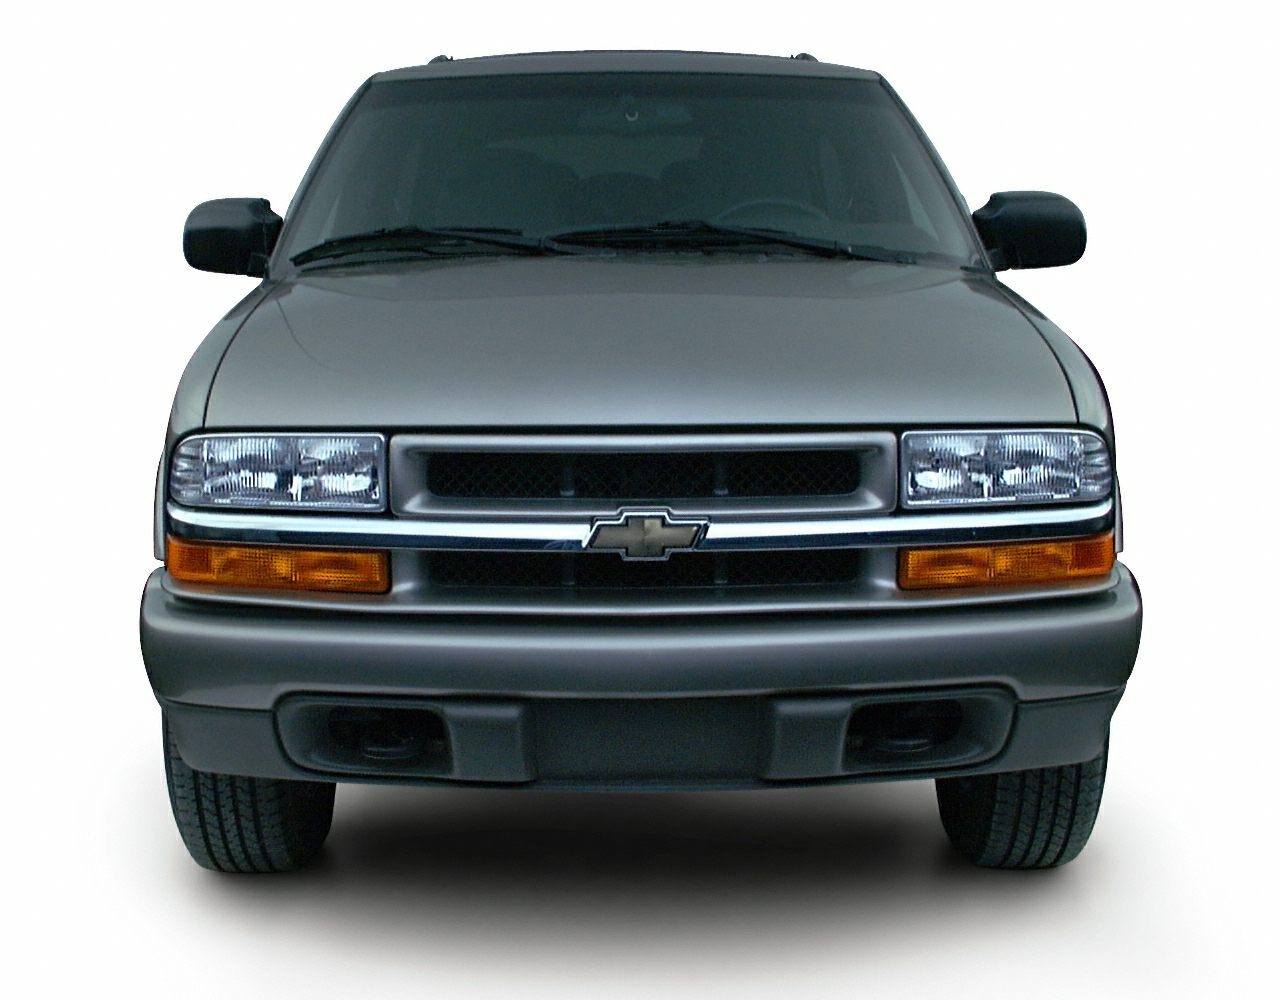 2000 Chevrolet Blazer Exterior Photo